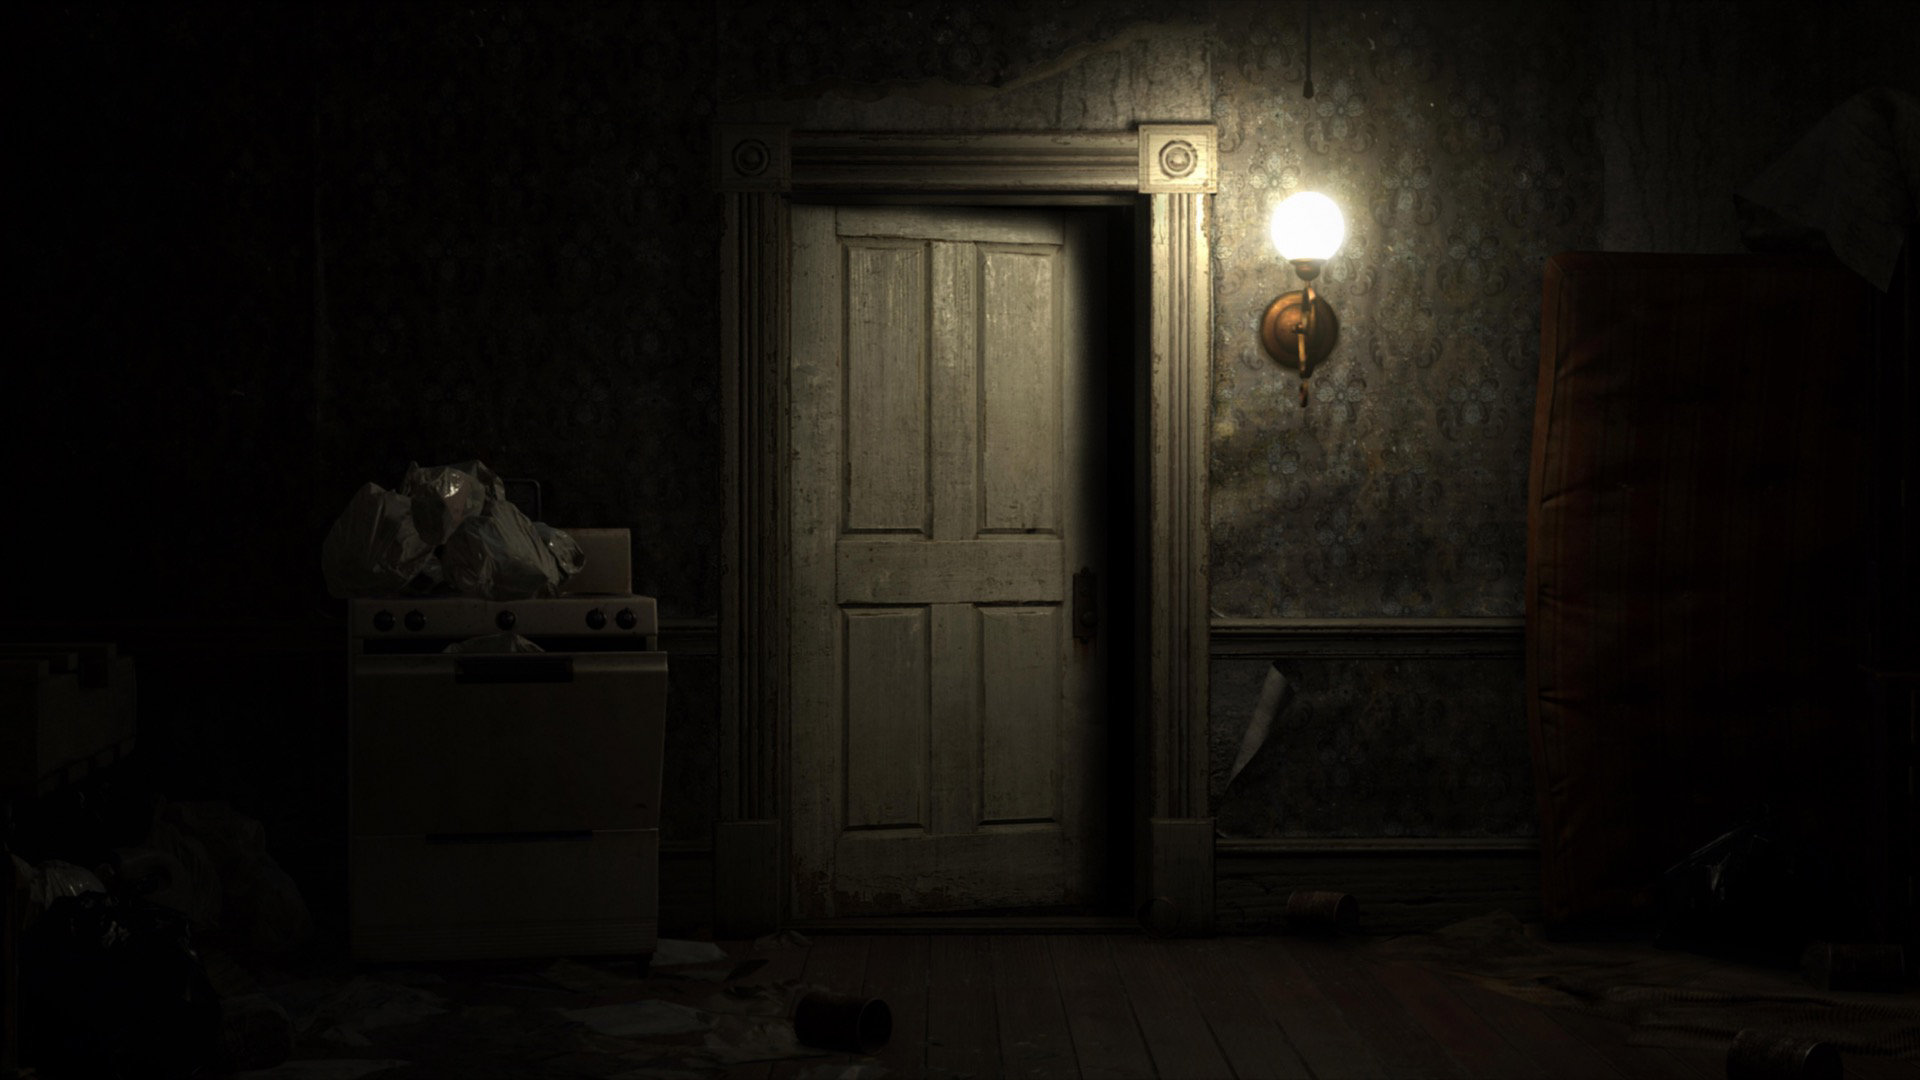 Resident Evil 7 Psvr Review A Thriller That Shouldn T Be Missed